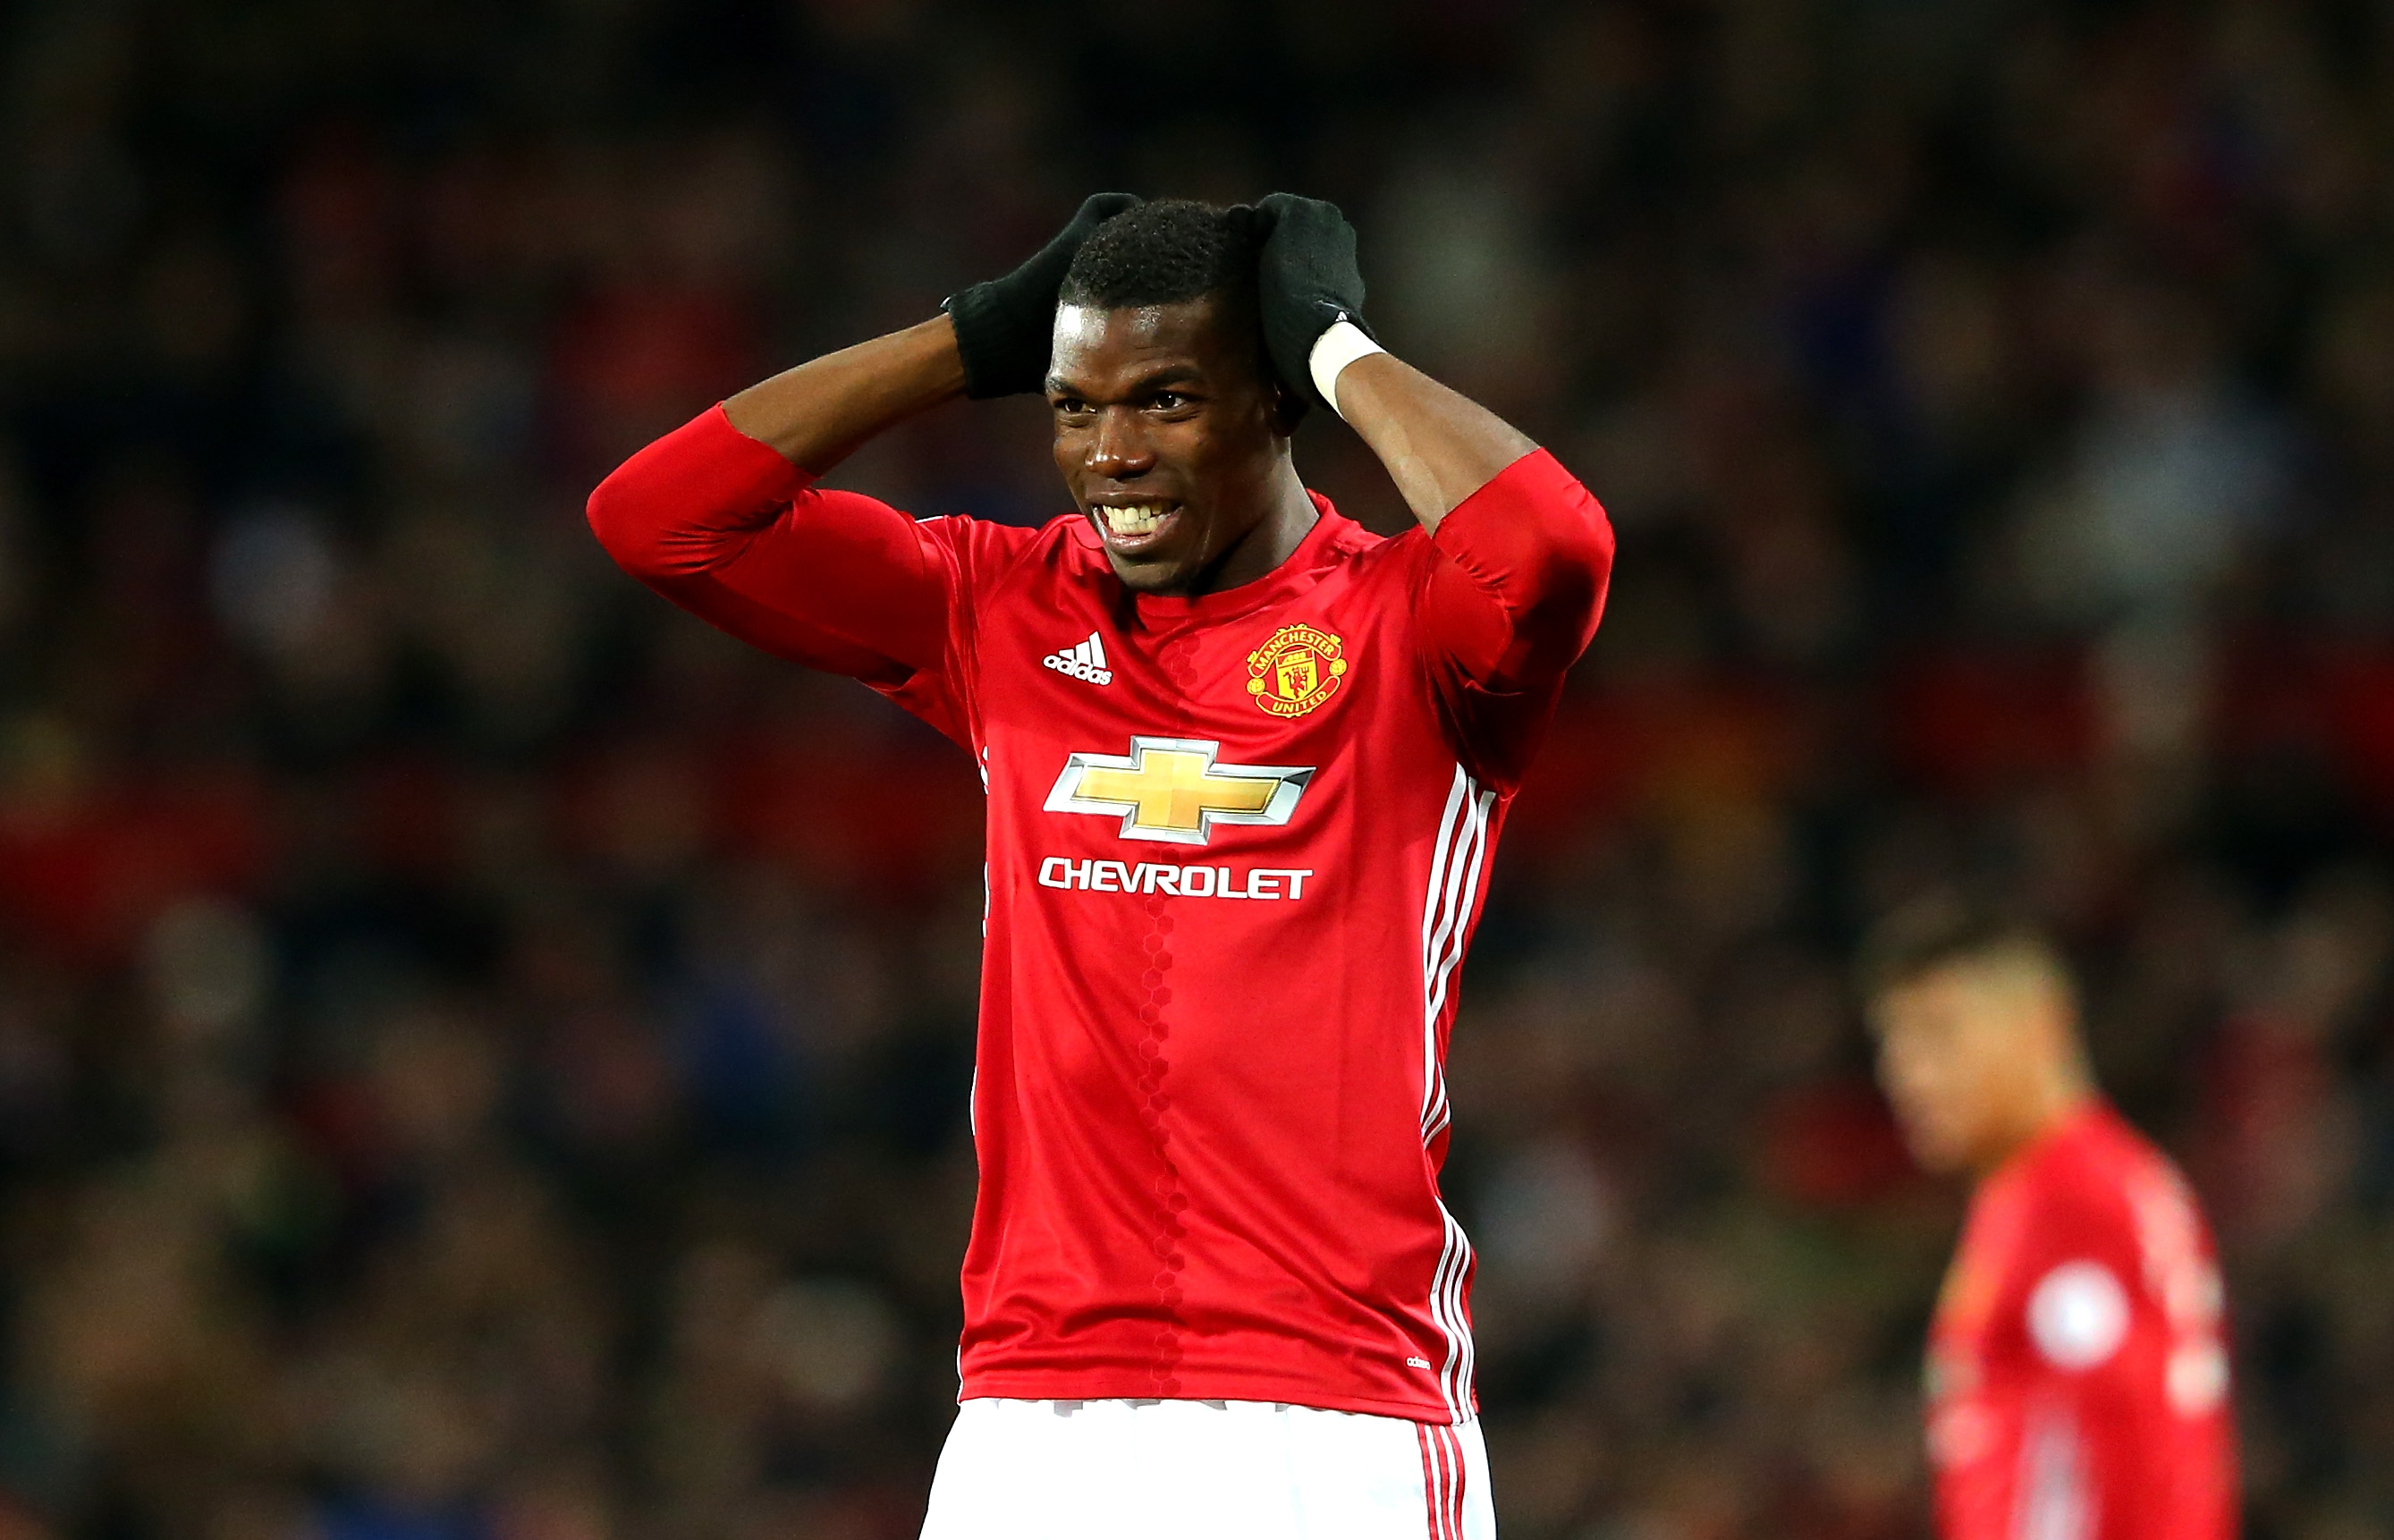 Why Manchester United's Paul Pogba WON'T win Ballon d'Or, according to Didier Deschamps